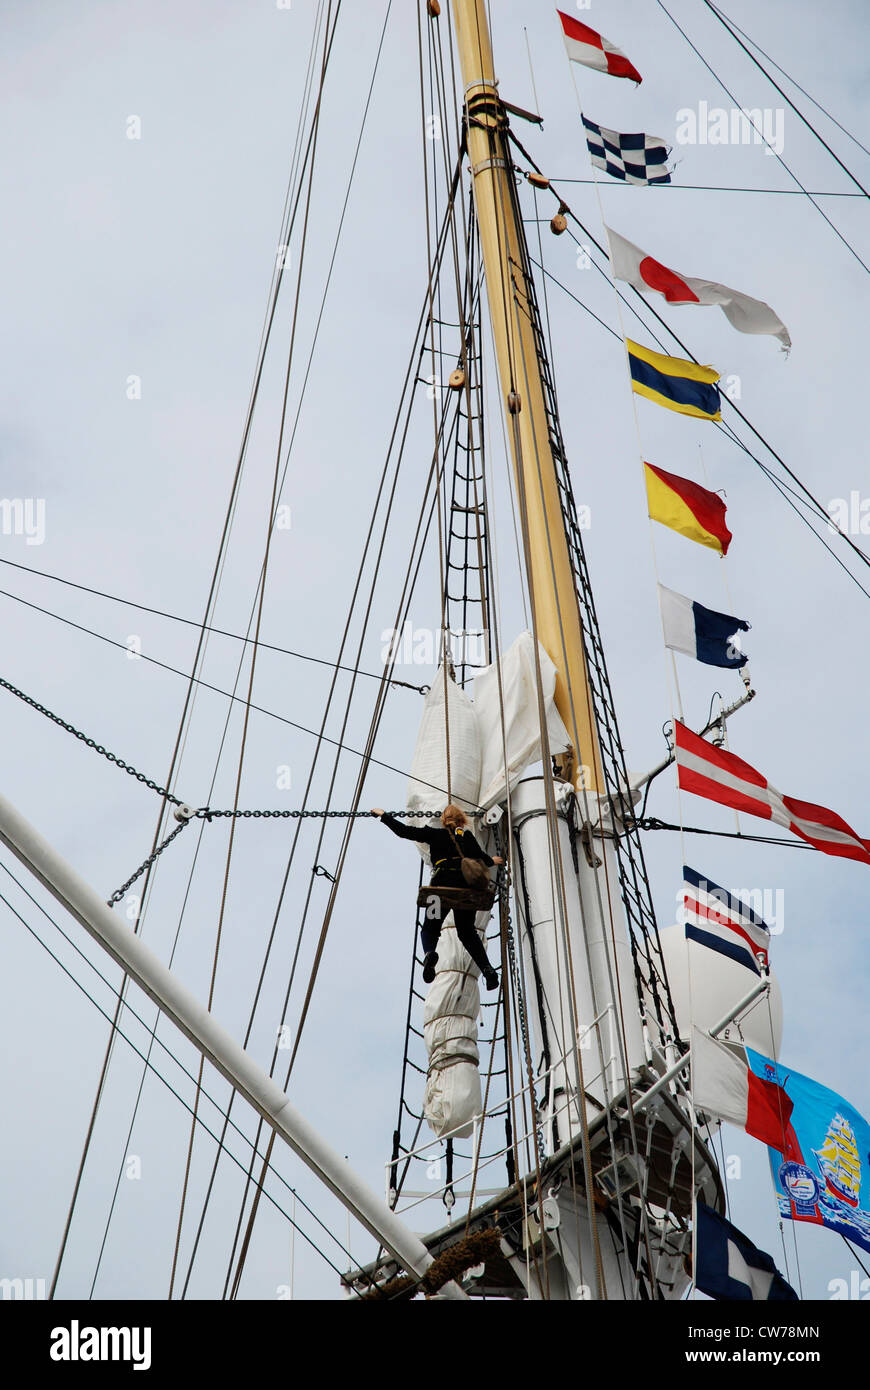 female sailor climbing in rigs of tall ship - Stock Image